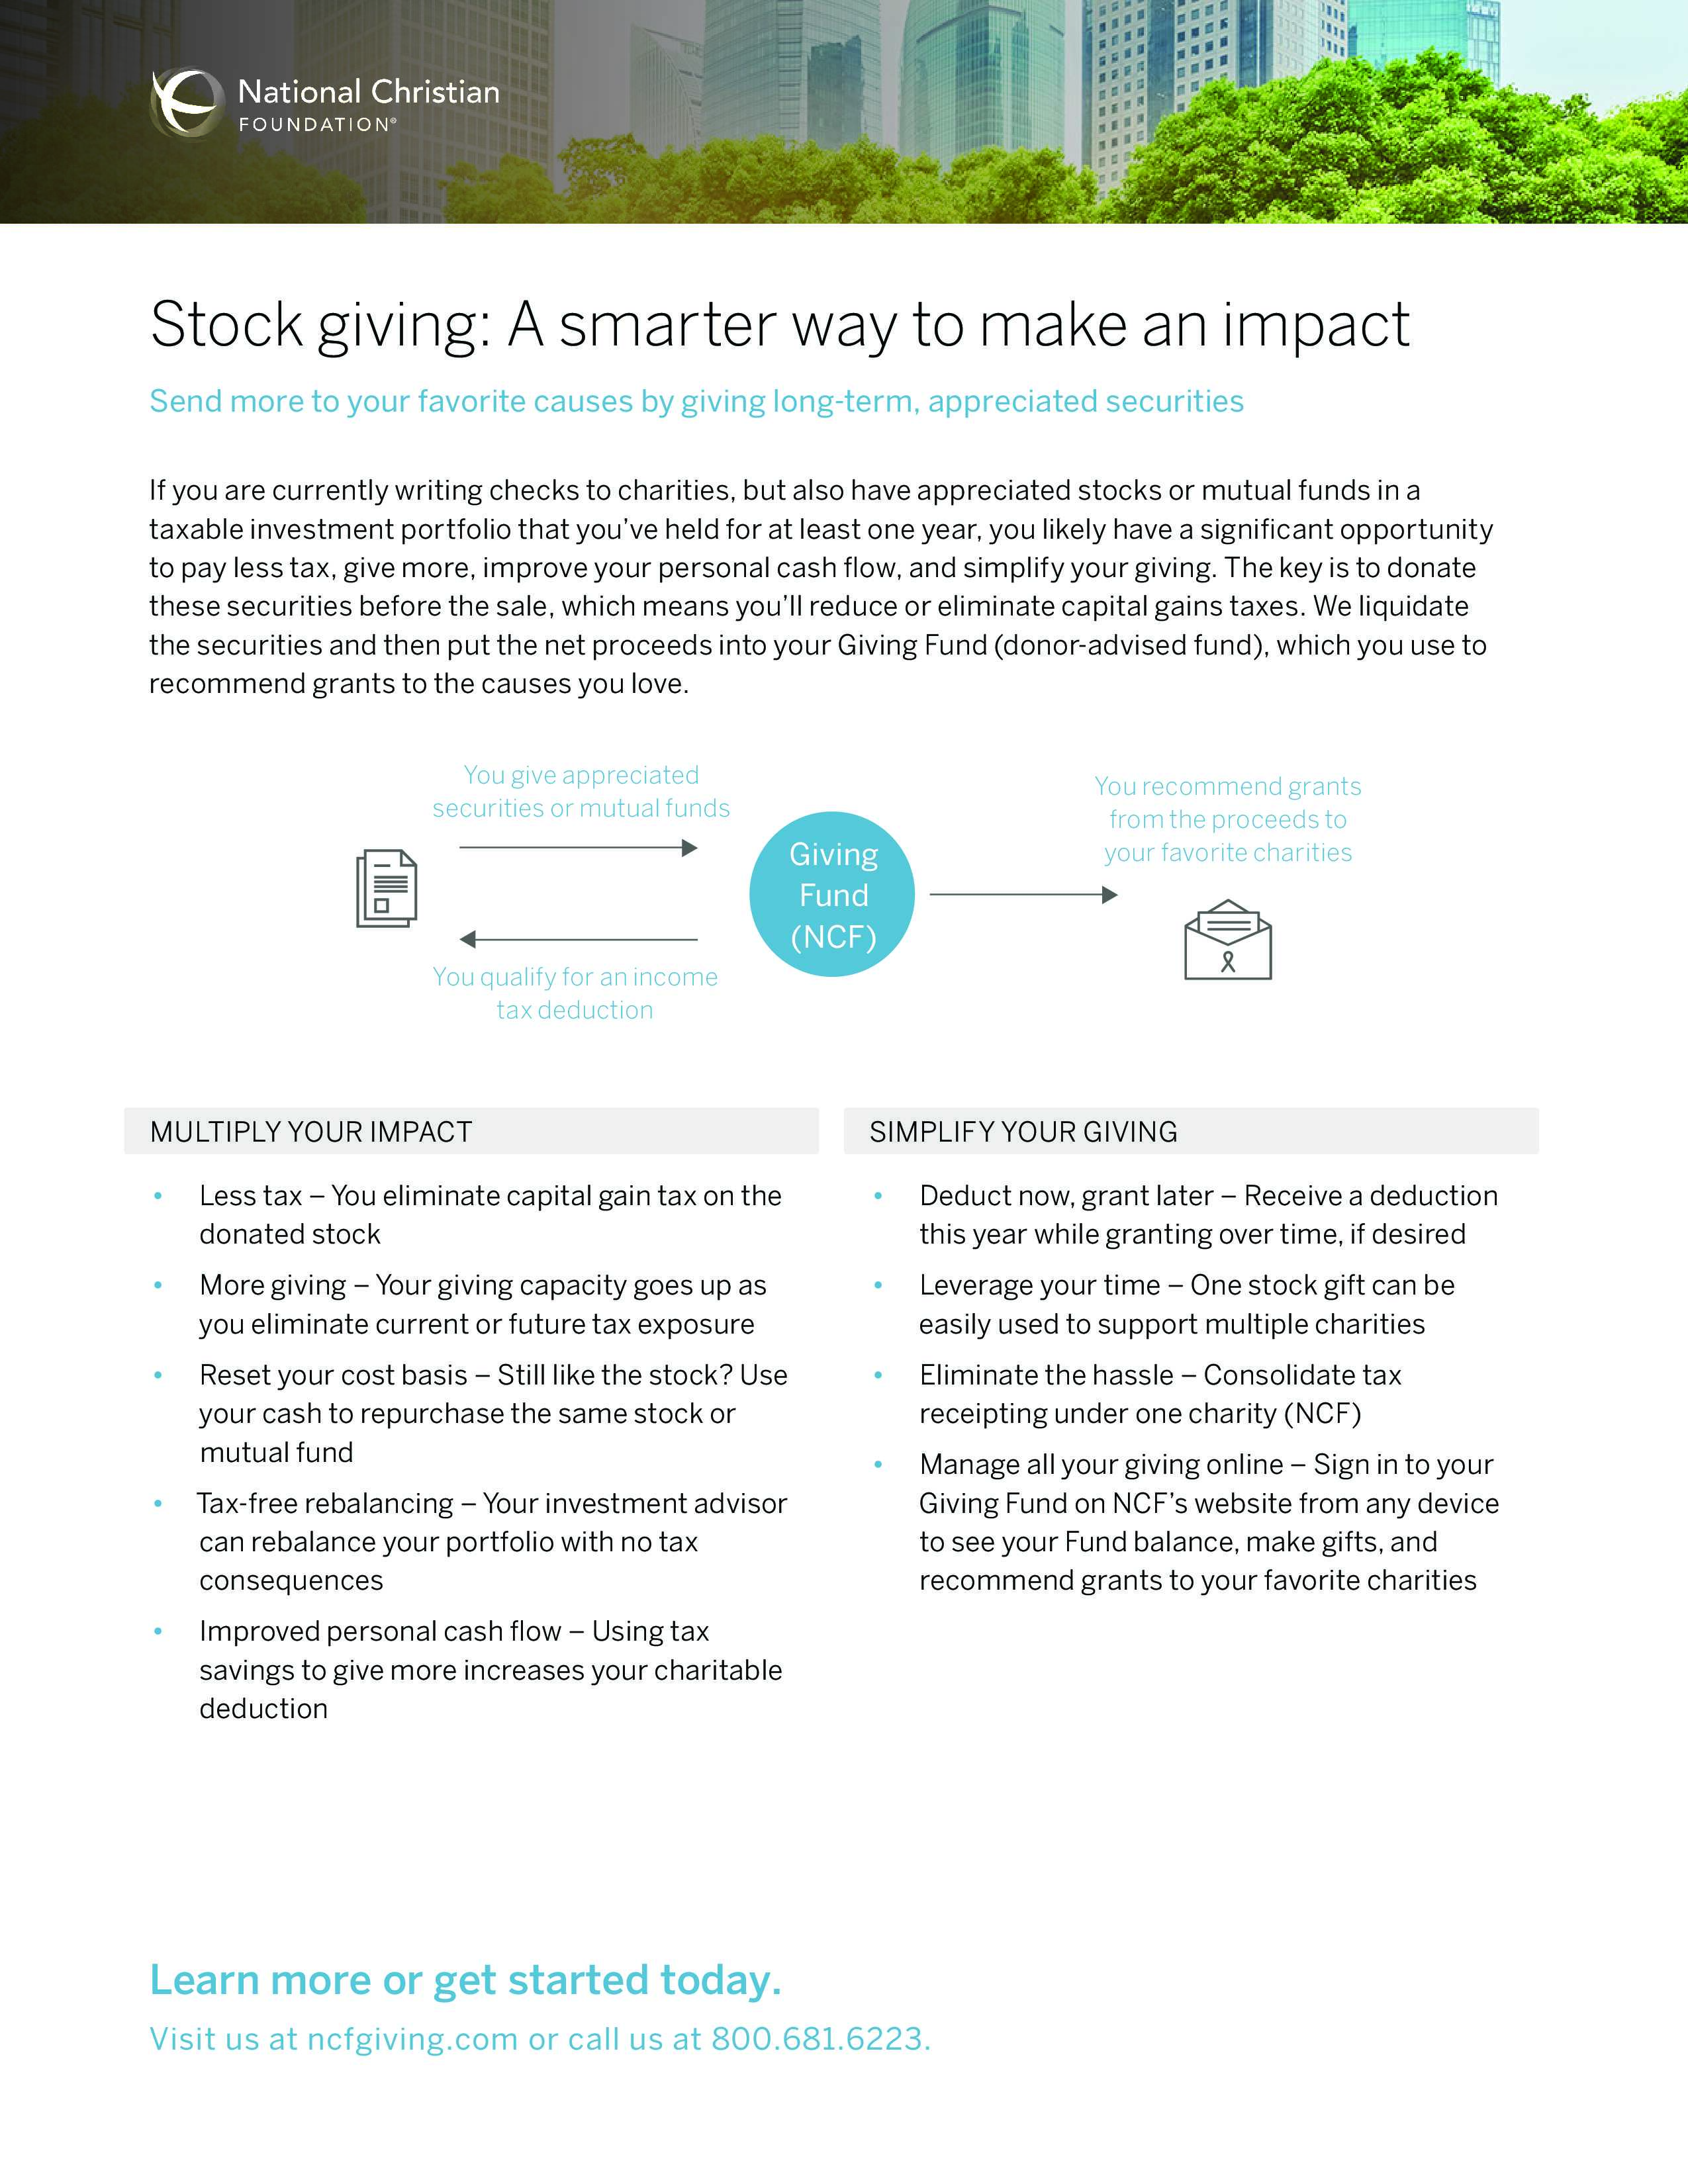 Stock Giving: A Smarter Way to Make An Impact